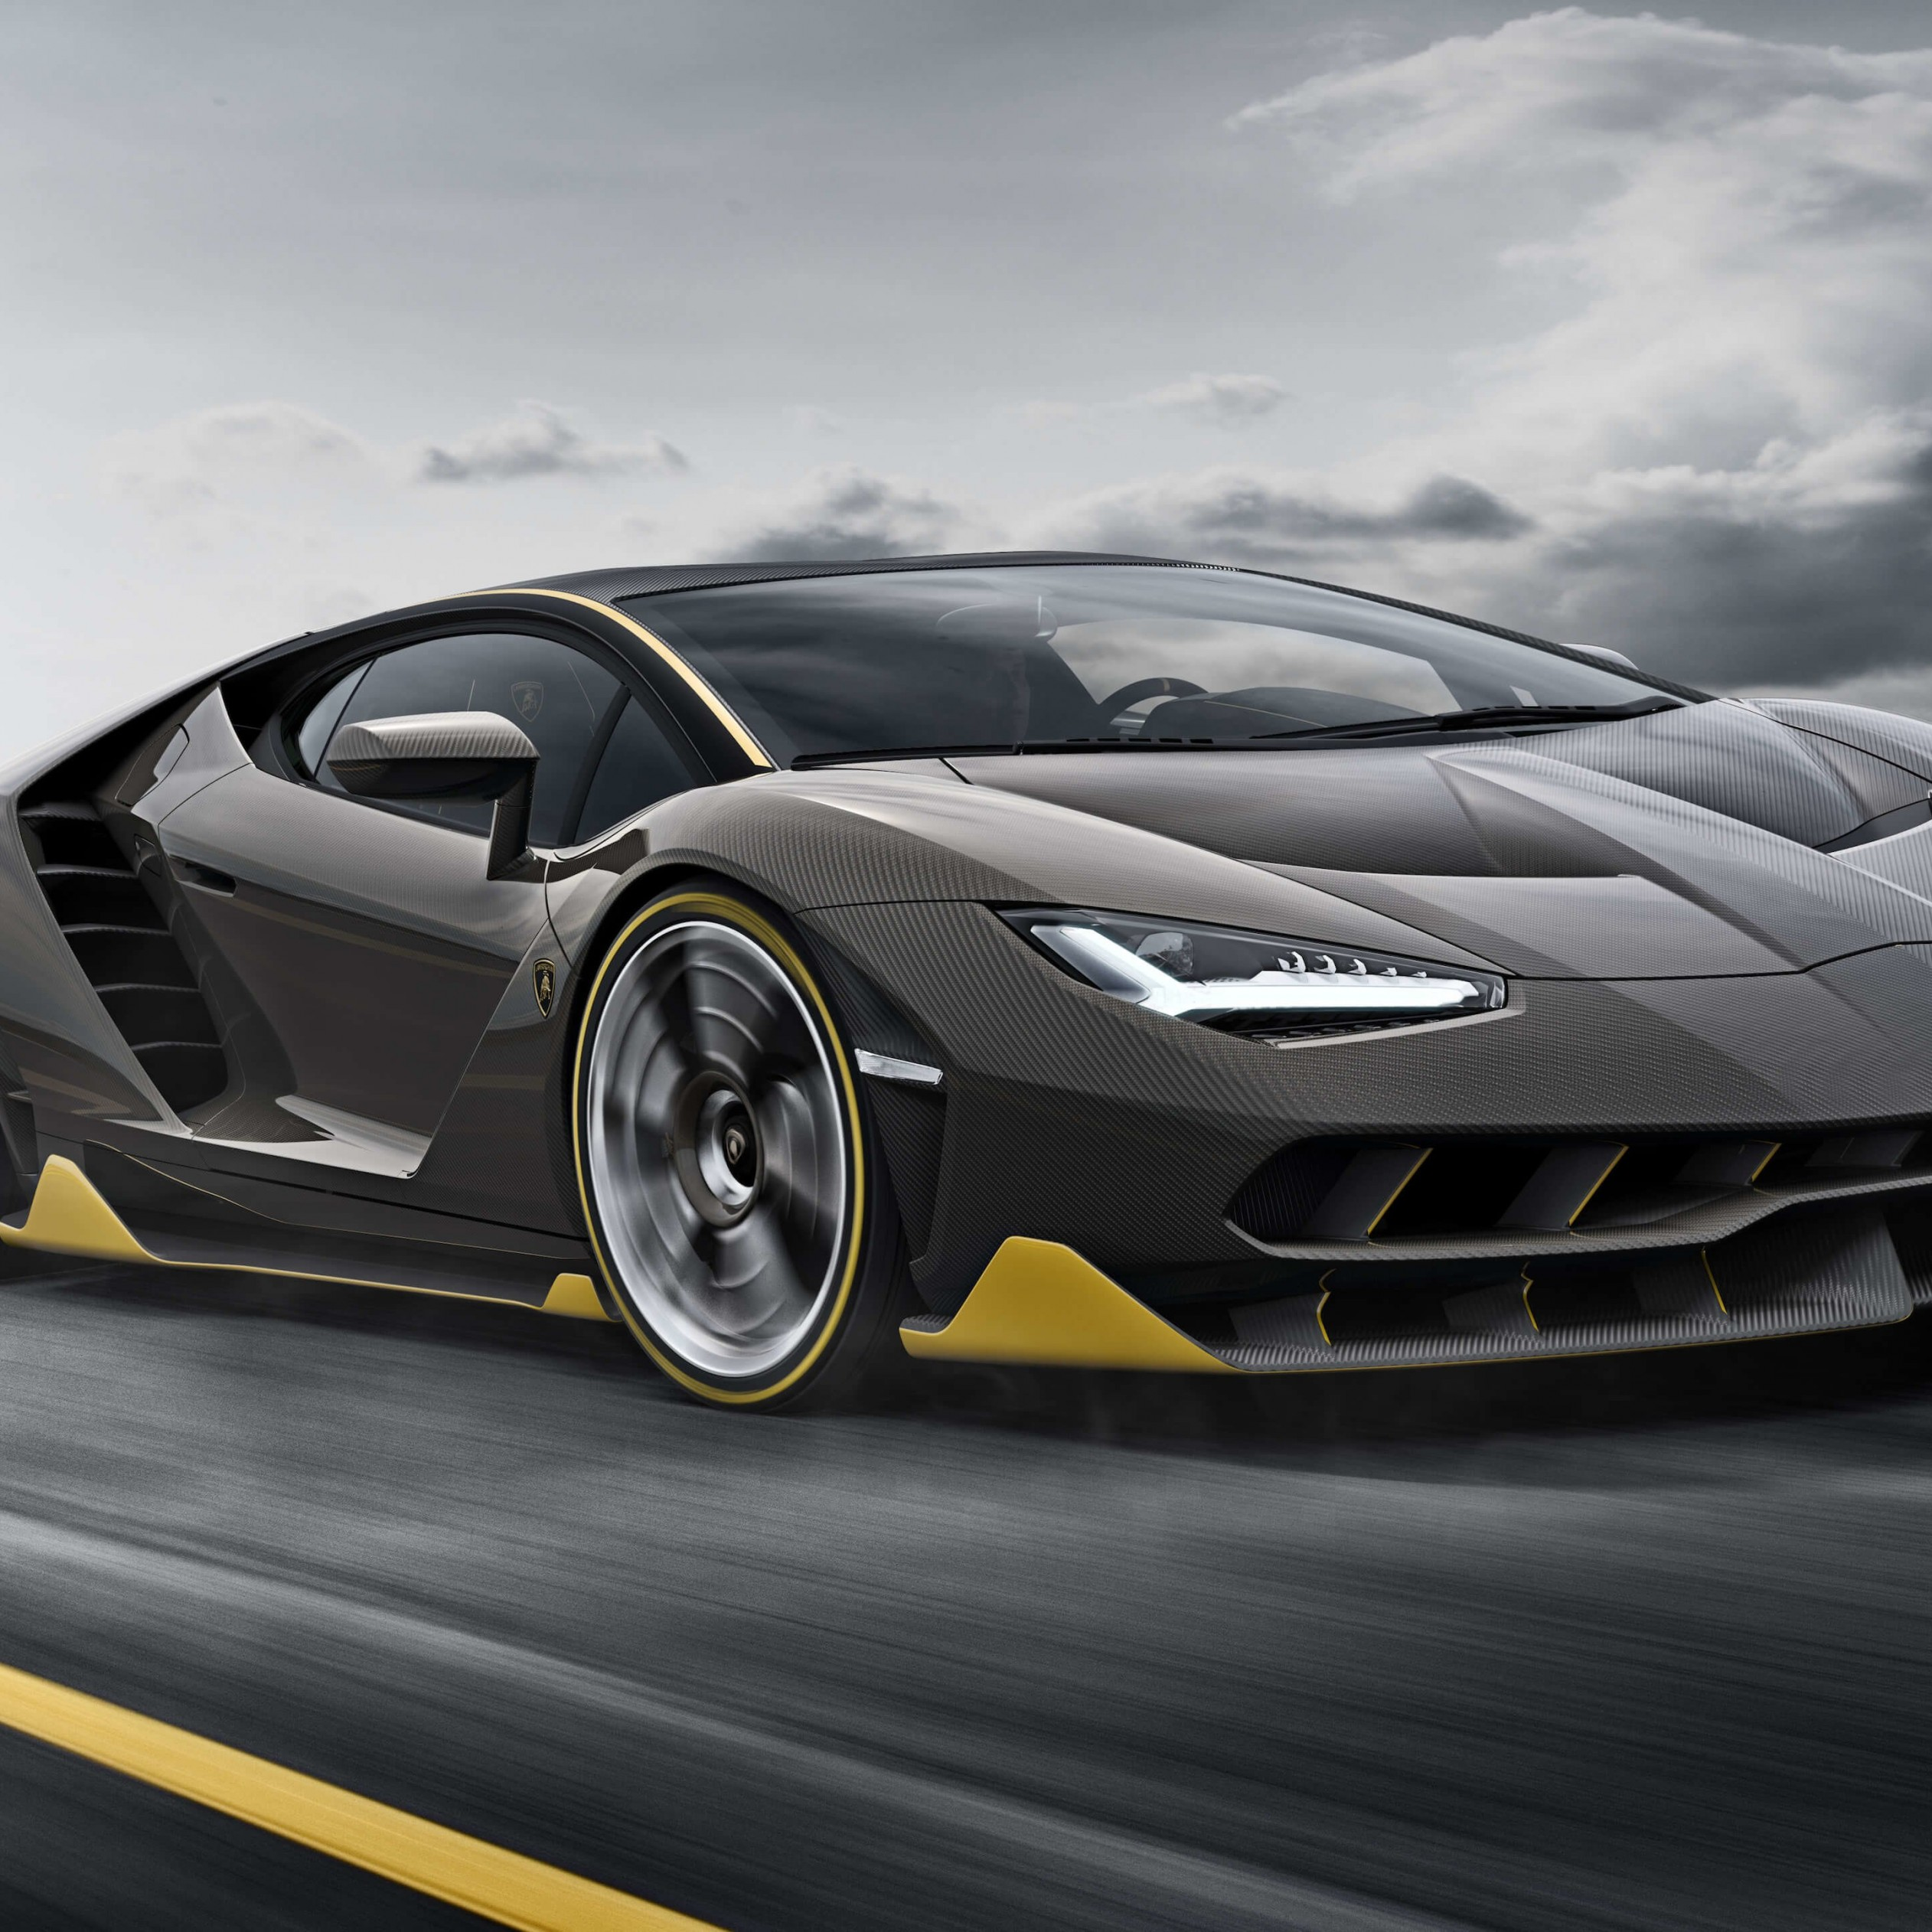 Lamborghini Centenario LP770-4 Wallpaper for Apple iPad 3